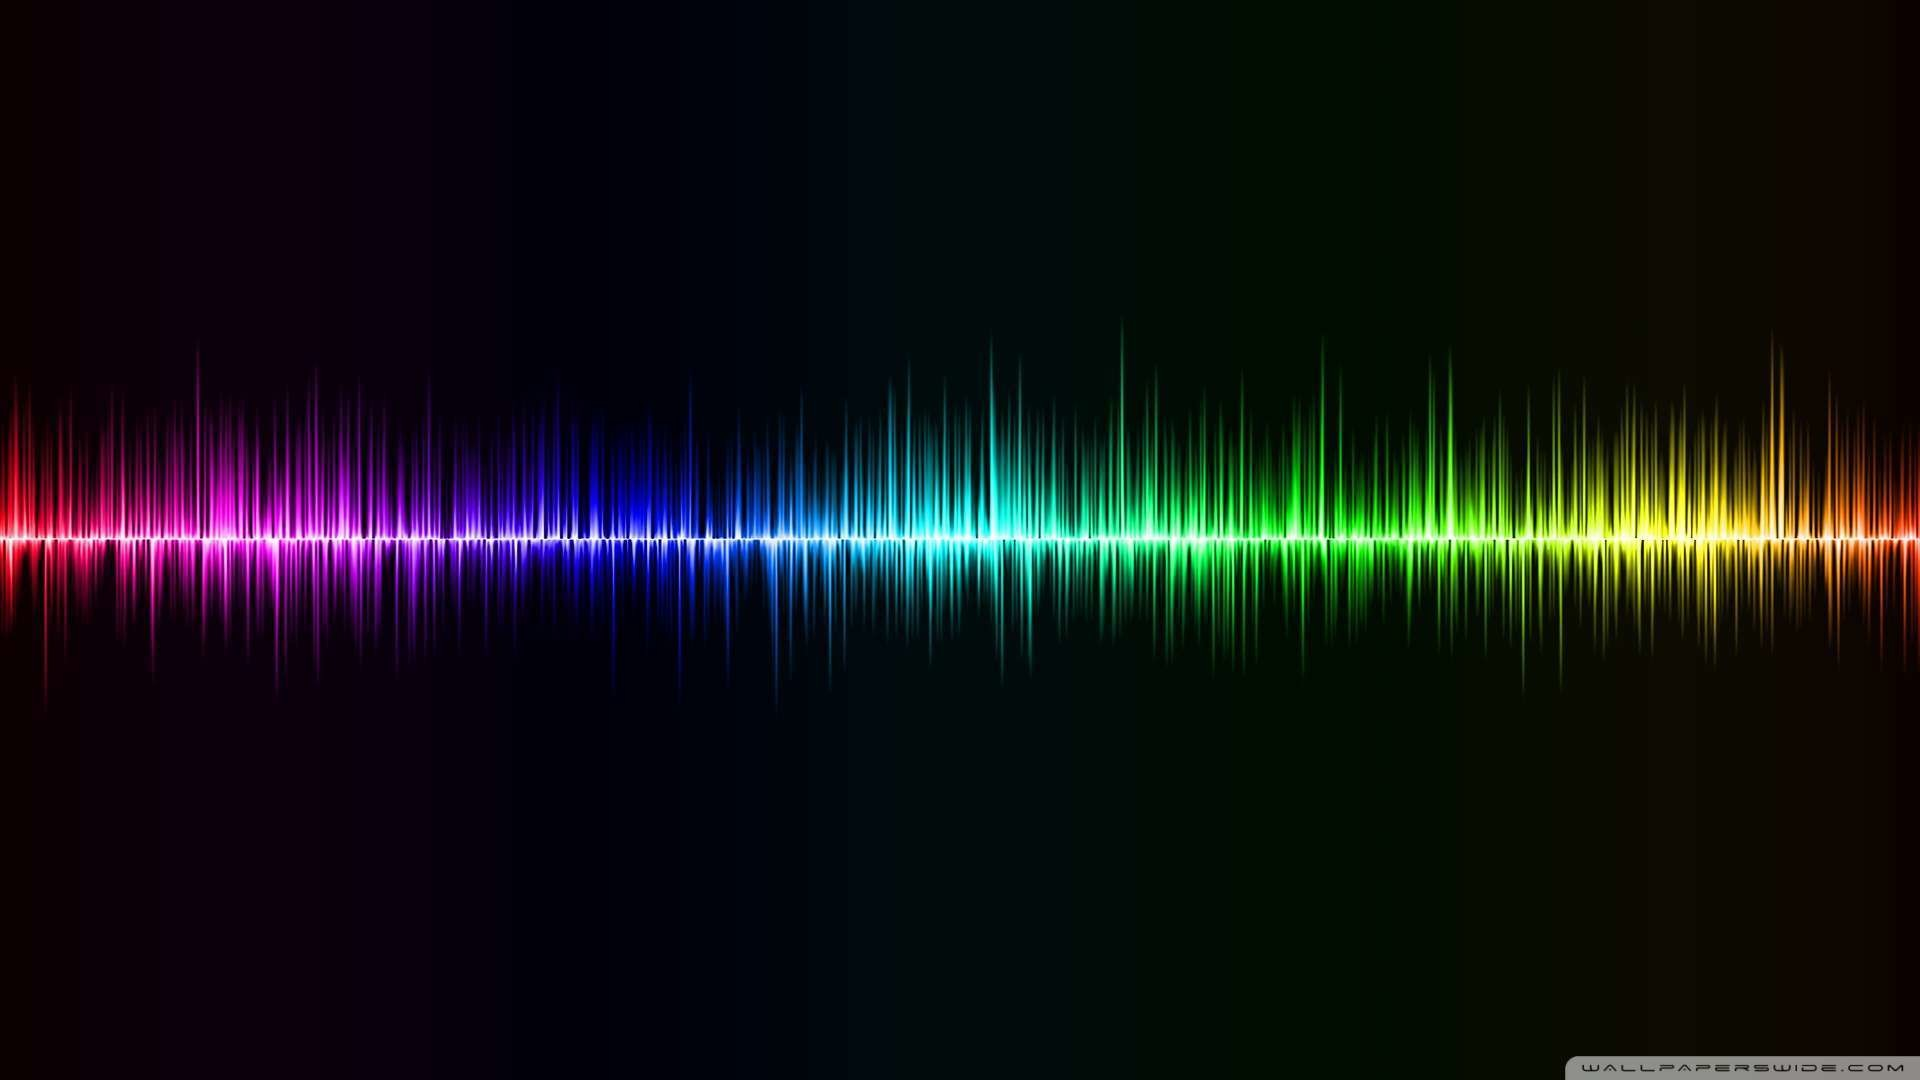 Music Sound Waves Live Wallpaper (74+ Images